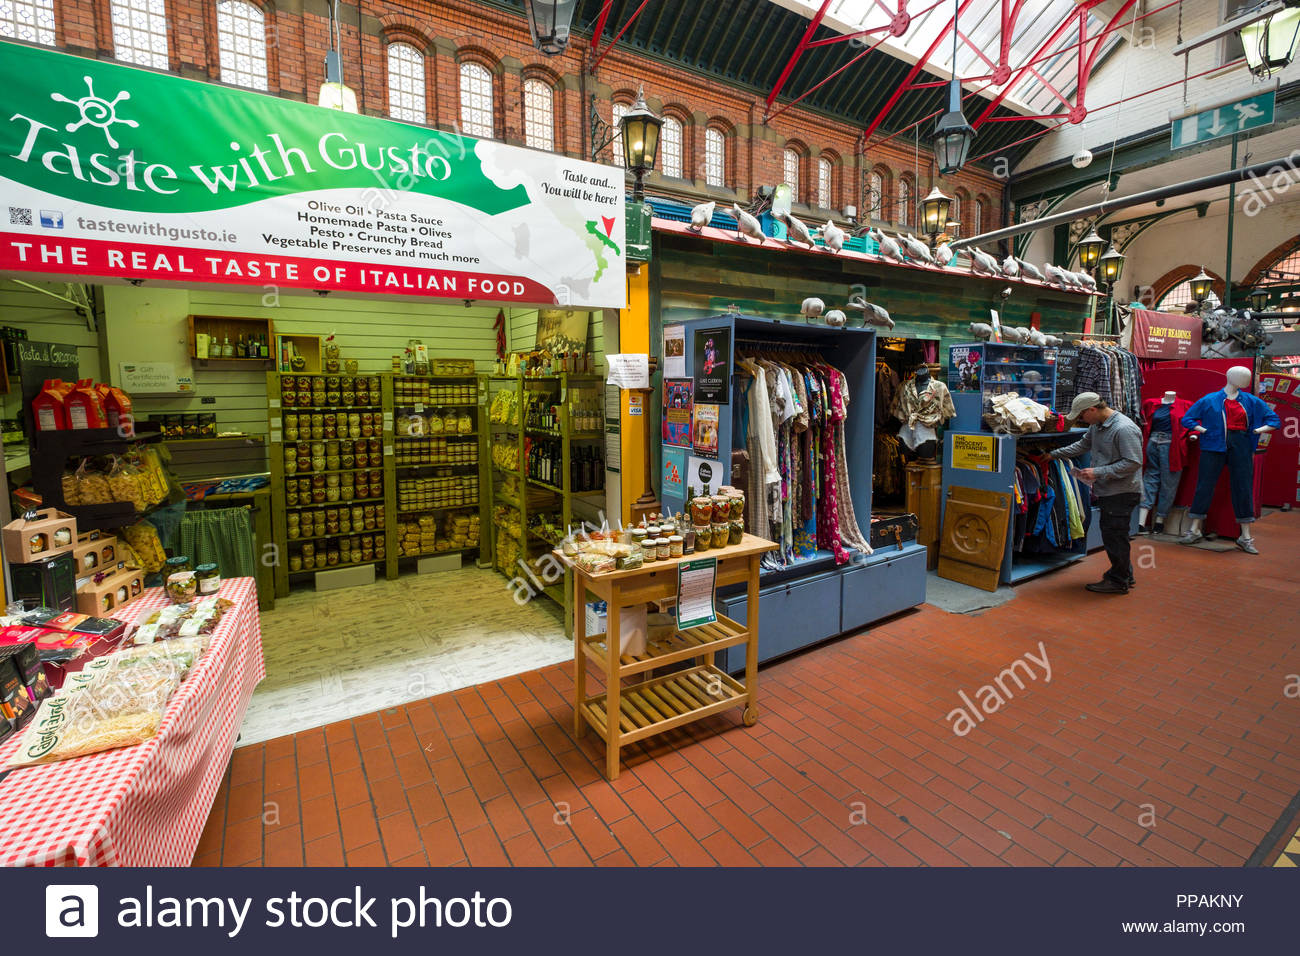 Taste with Gusto and clothing booth inside George's Street Arcade, Dublin, Leinster, Ireland - Stock Image